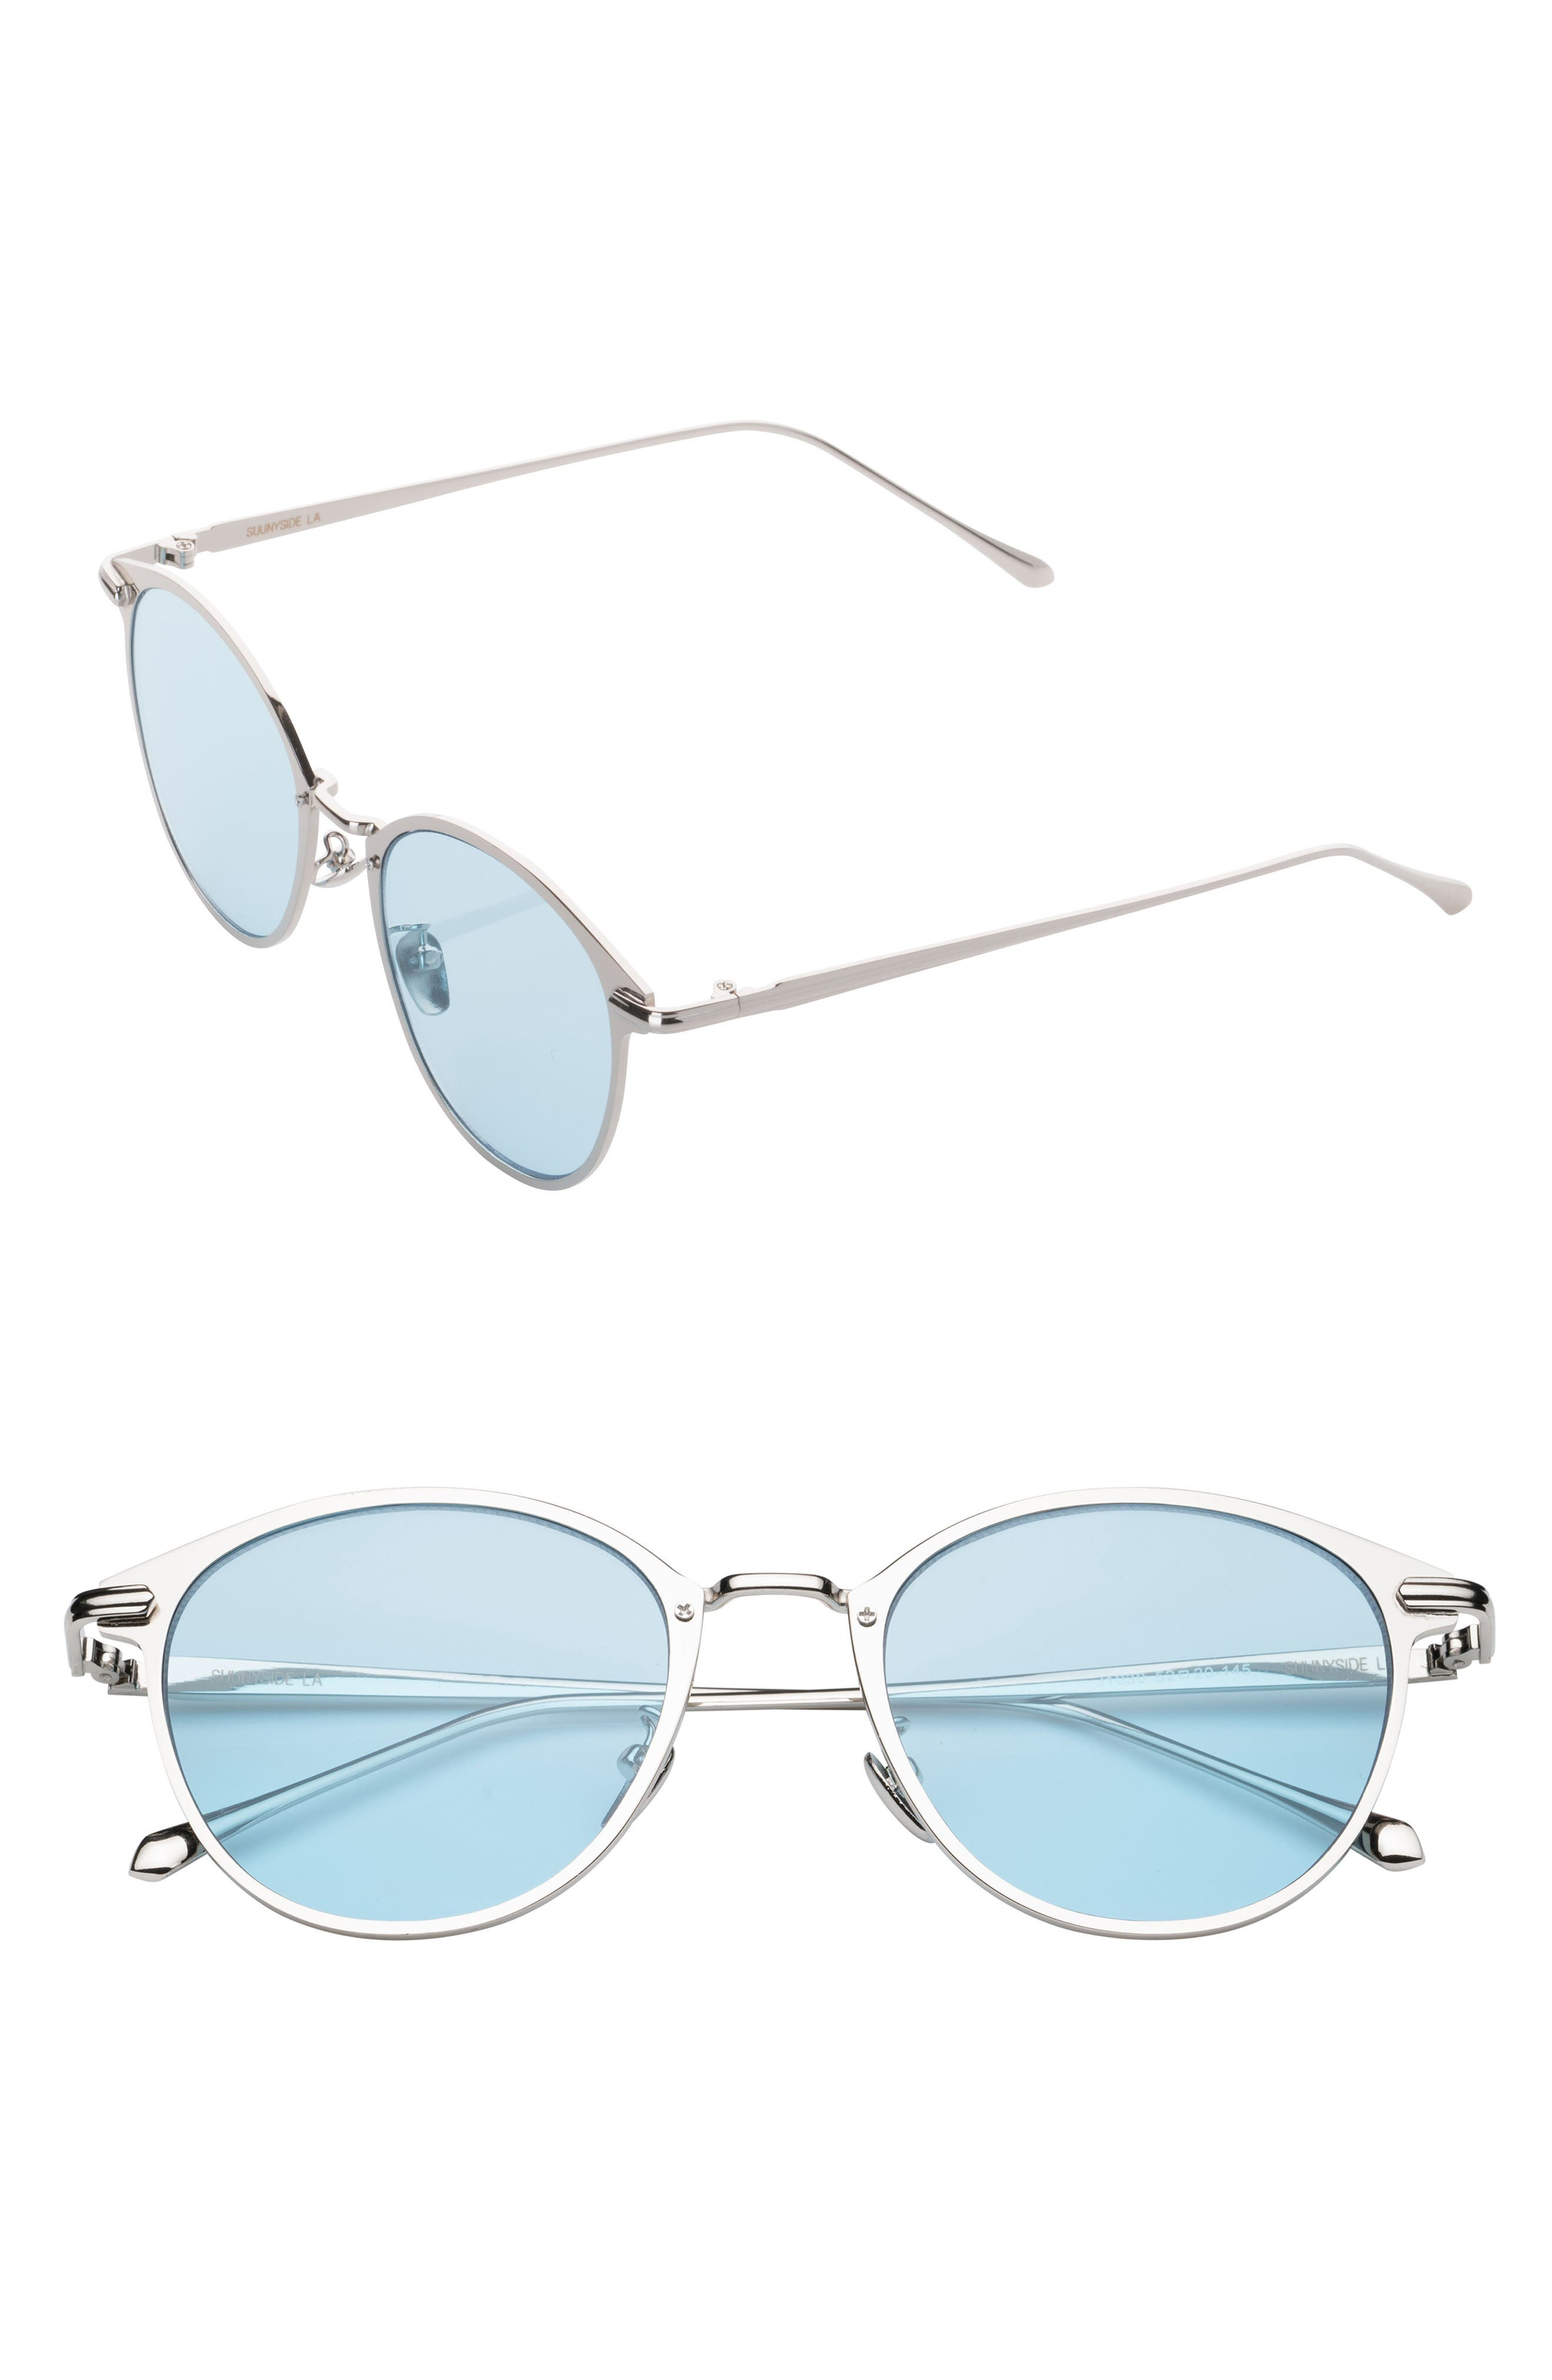 Main Image - SunnySide LA 51mm Oxford Sunglasses